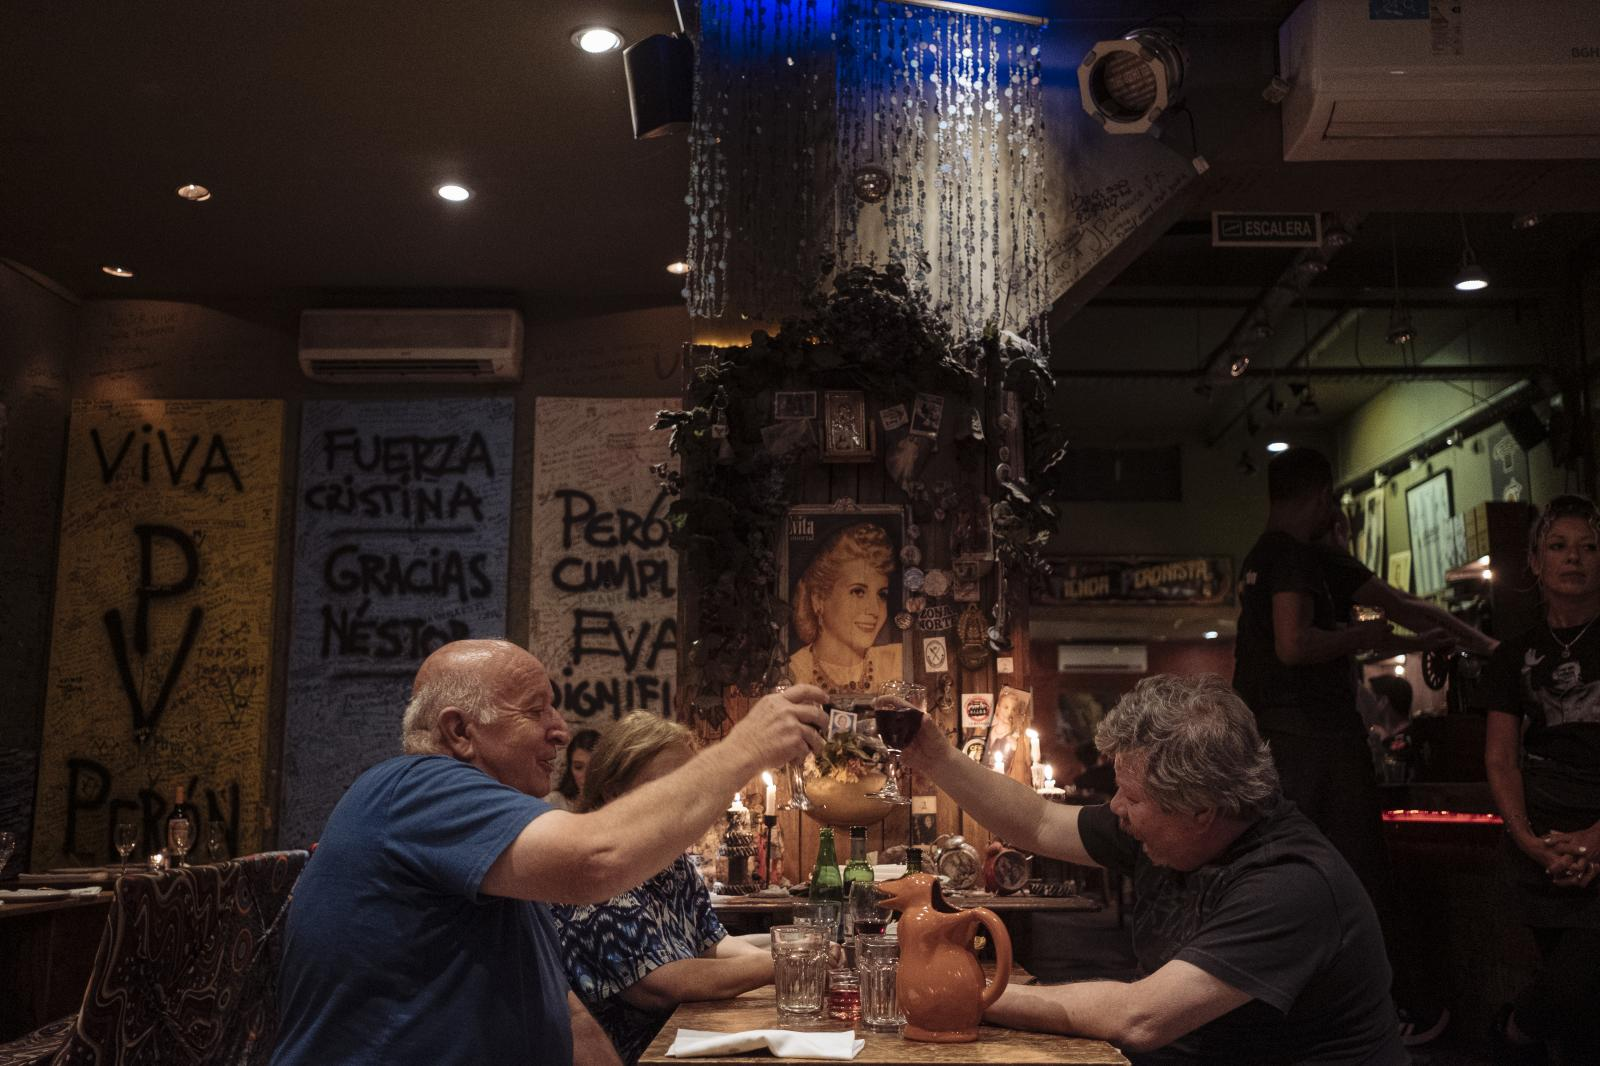 Customers toast in fron of Evita's altar at Perón Perón restaurant, Buenos Aires, Argentina, on Friday, Dec. 6, 2019.